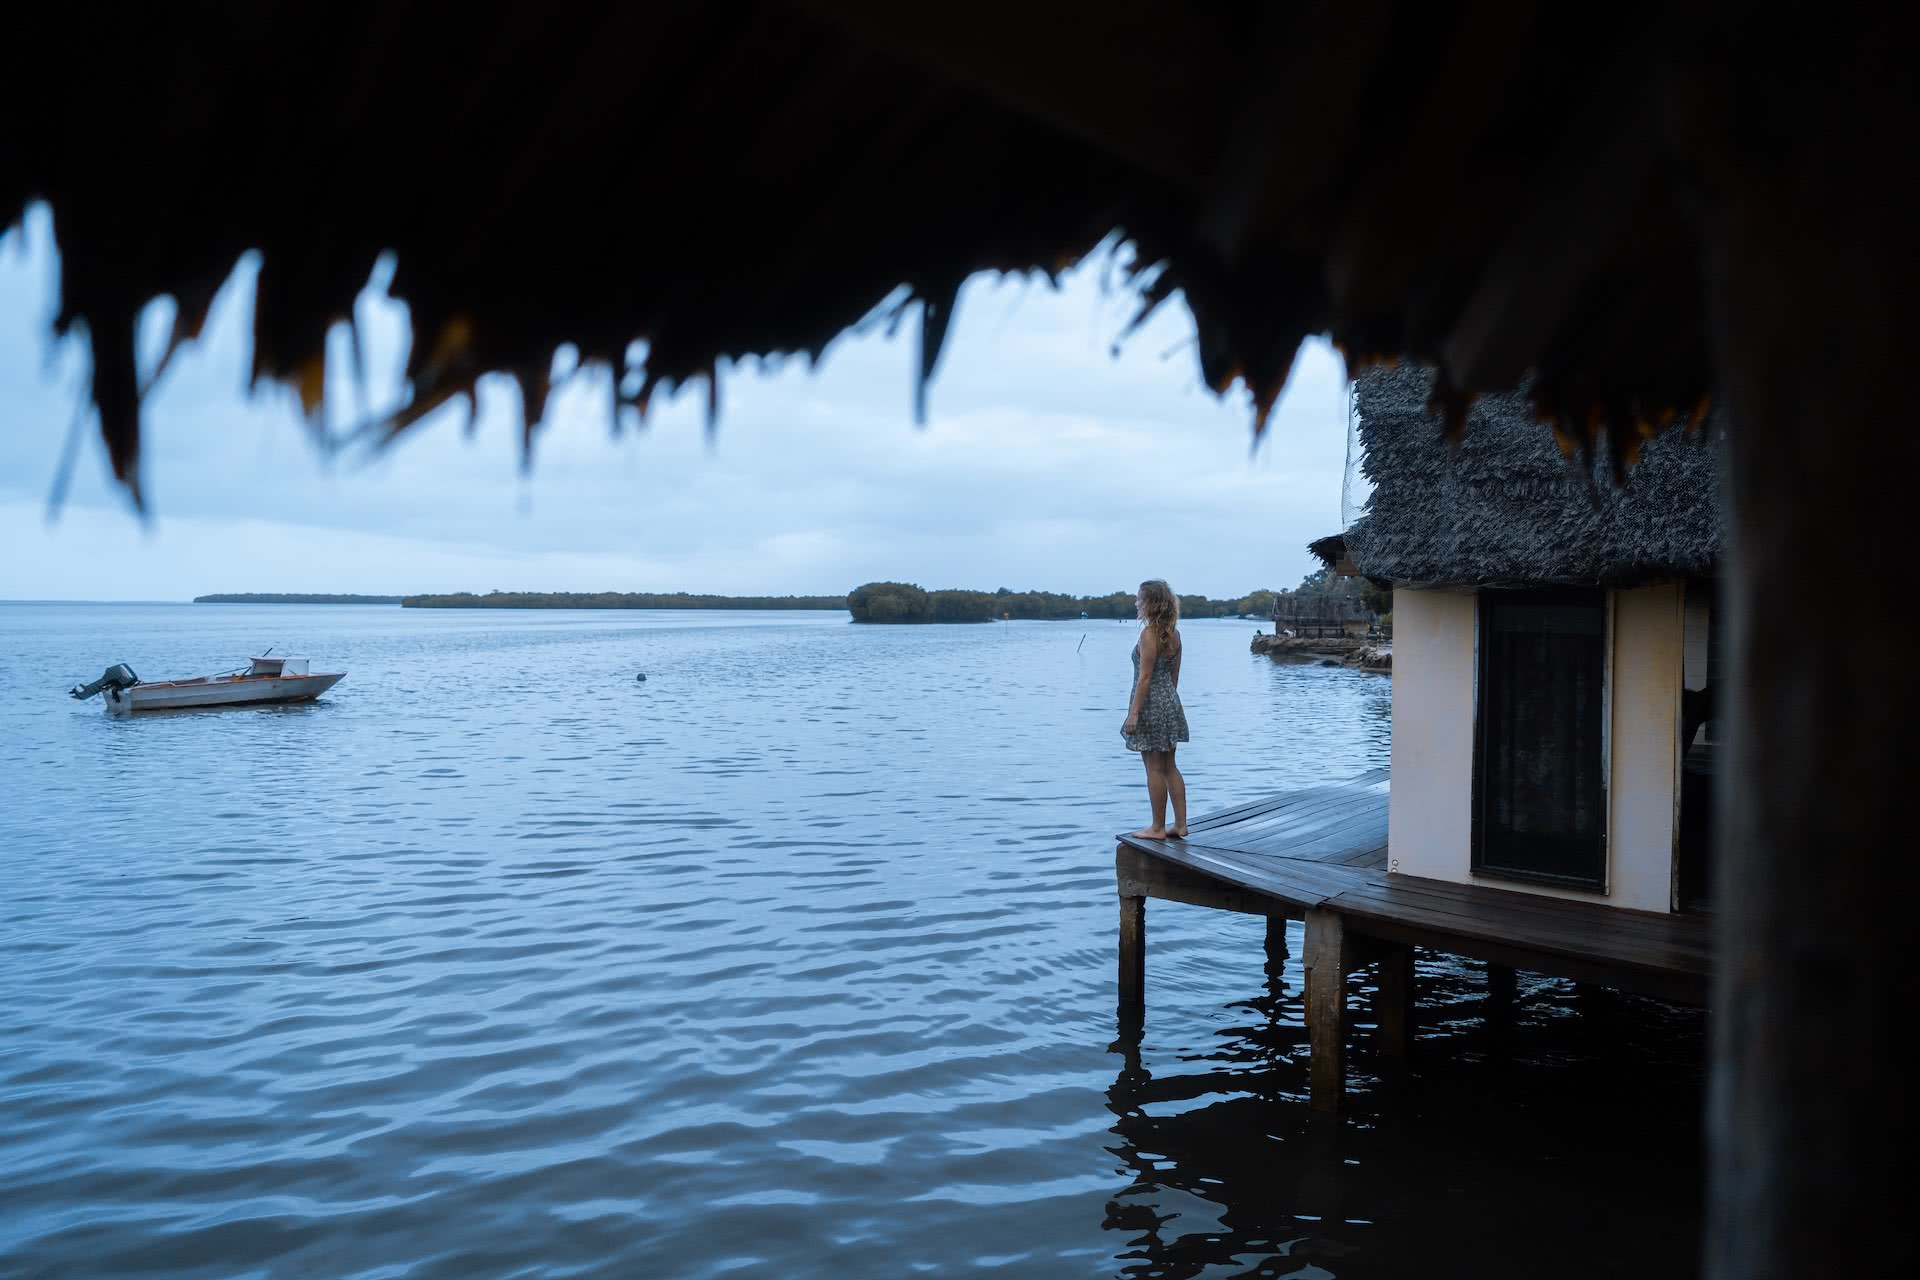 The Best Places to Stay in the Outer Islands of Vanuatu, photos by Ben Savage and Ain Raadik, Ruby Claire, Maskelyns islands Batis Seaside Bungalow, woman, ocean, accommodation, hut, water